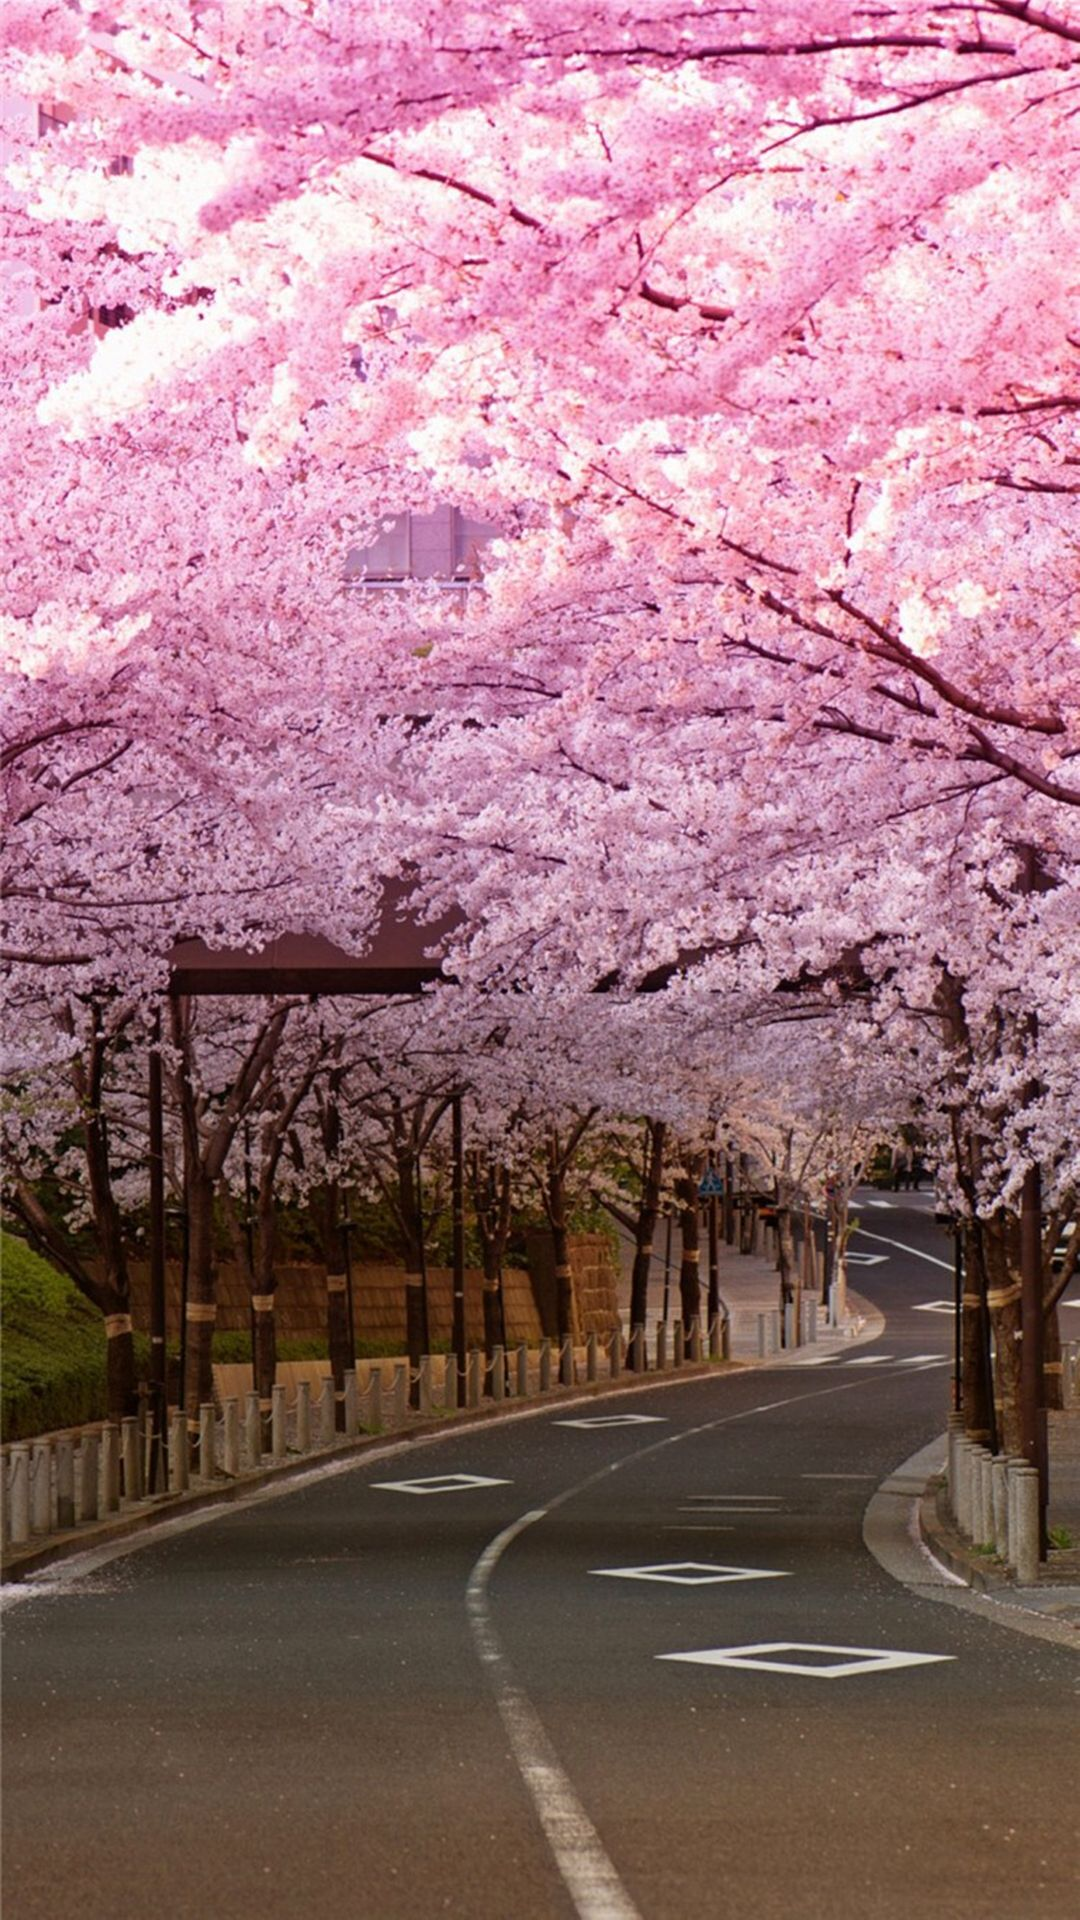 Bright Cherry Blossom Road Cherry Blossom Wallpaper Iphone Cherry Blossom Wallpaper Cherry Blossom Japan